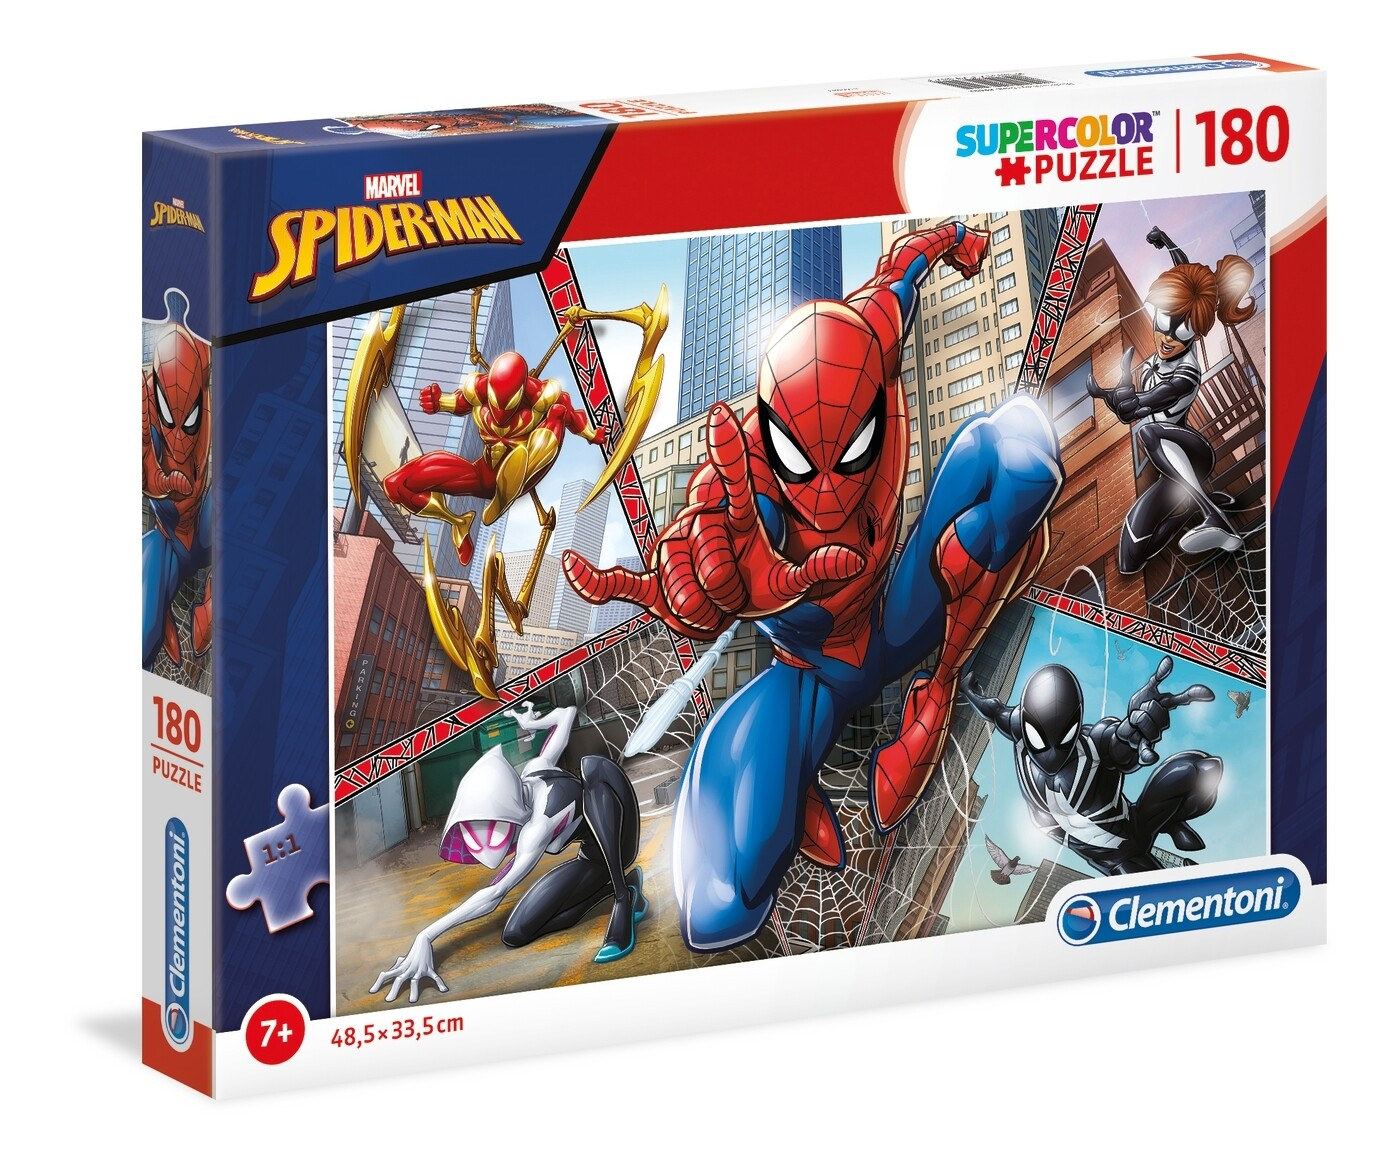 PUZZLE Super 180pcs Spiderman - CLEMENTONI